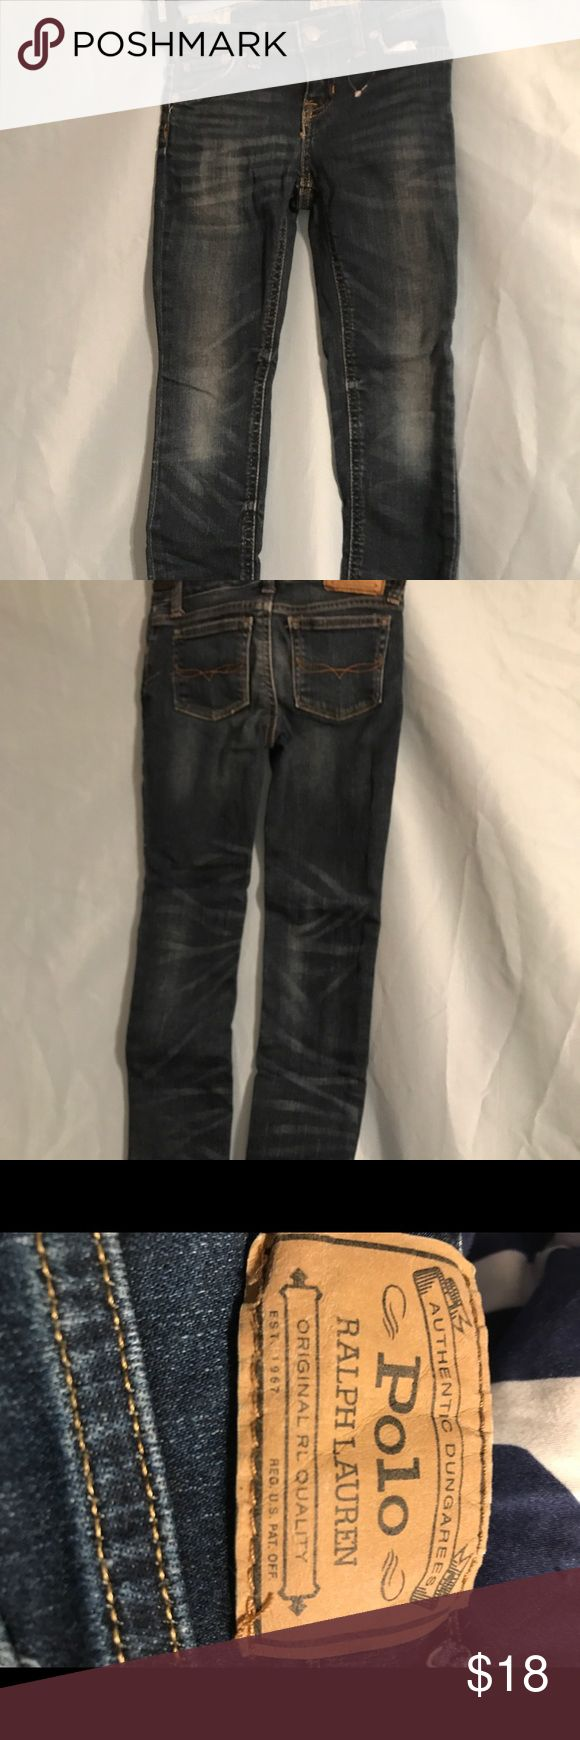 Ralph Lauren Polo Jeans Jemma style Make offer! Ralph Lauren Polo Jeans Jemma, knee hole grinding super skinny dark wash. Polo by Ralph Lauren Bottoms Jeans